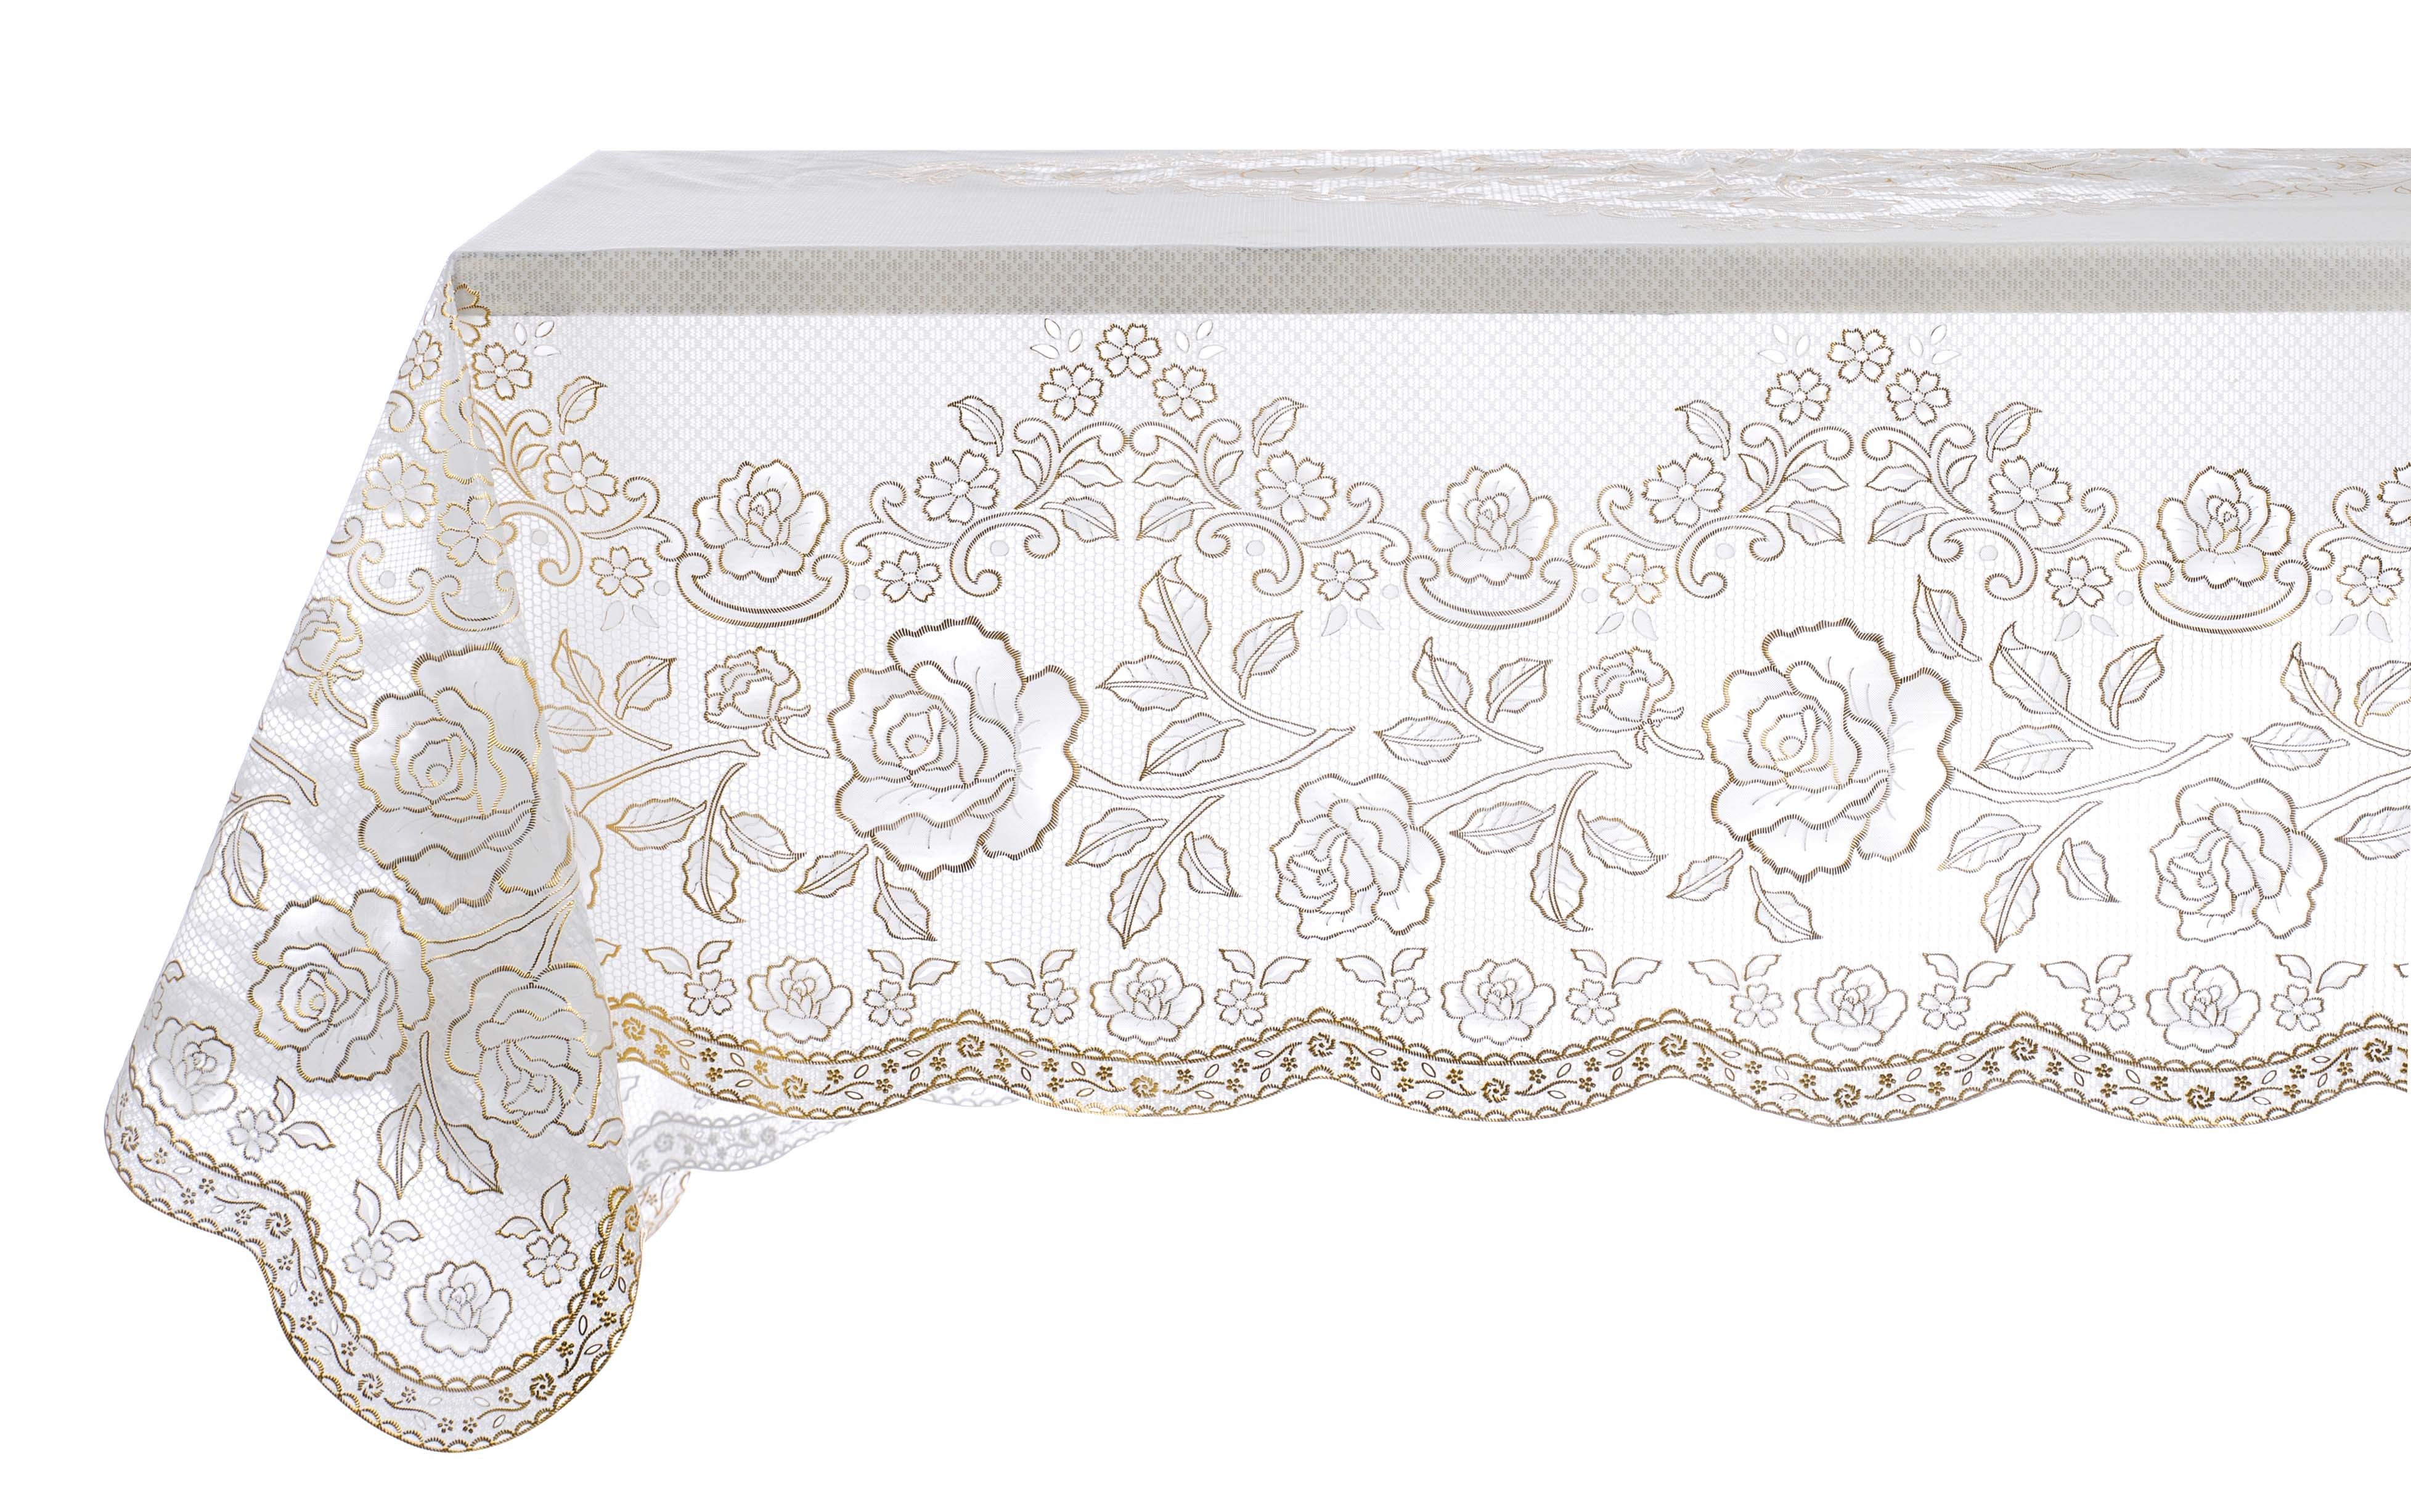 Vinyl Lace Tablecloth Gold By Blanc Mariclo Ideal For A Shabby Chic Decor